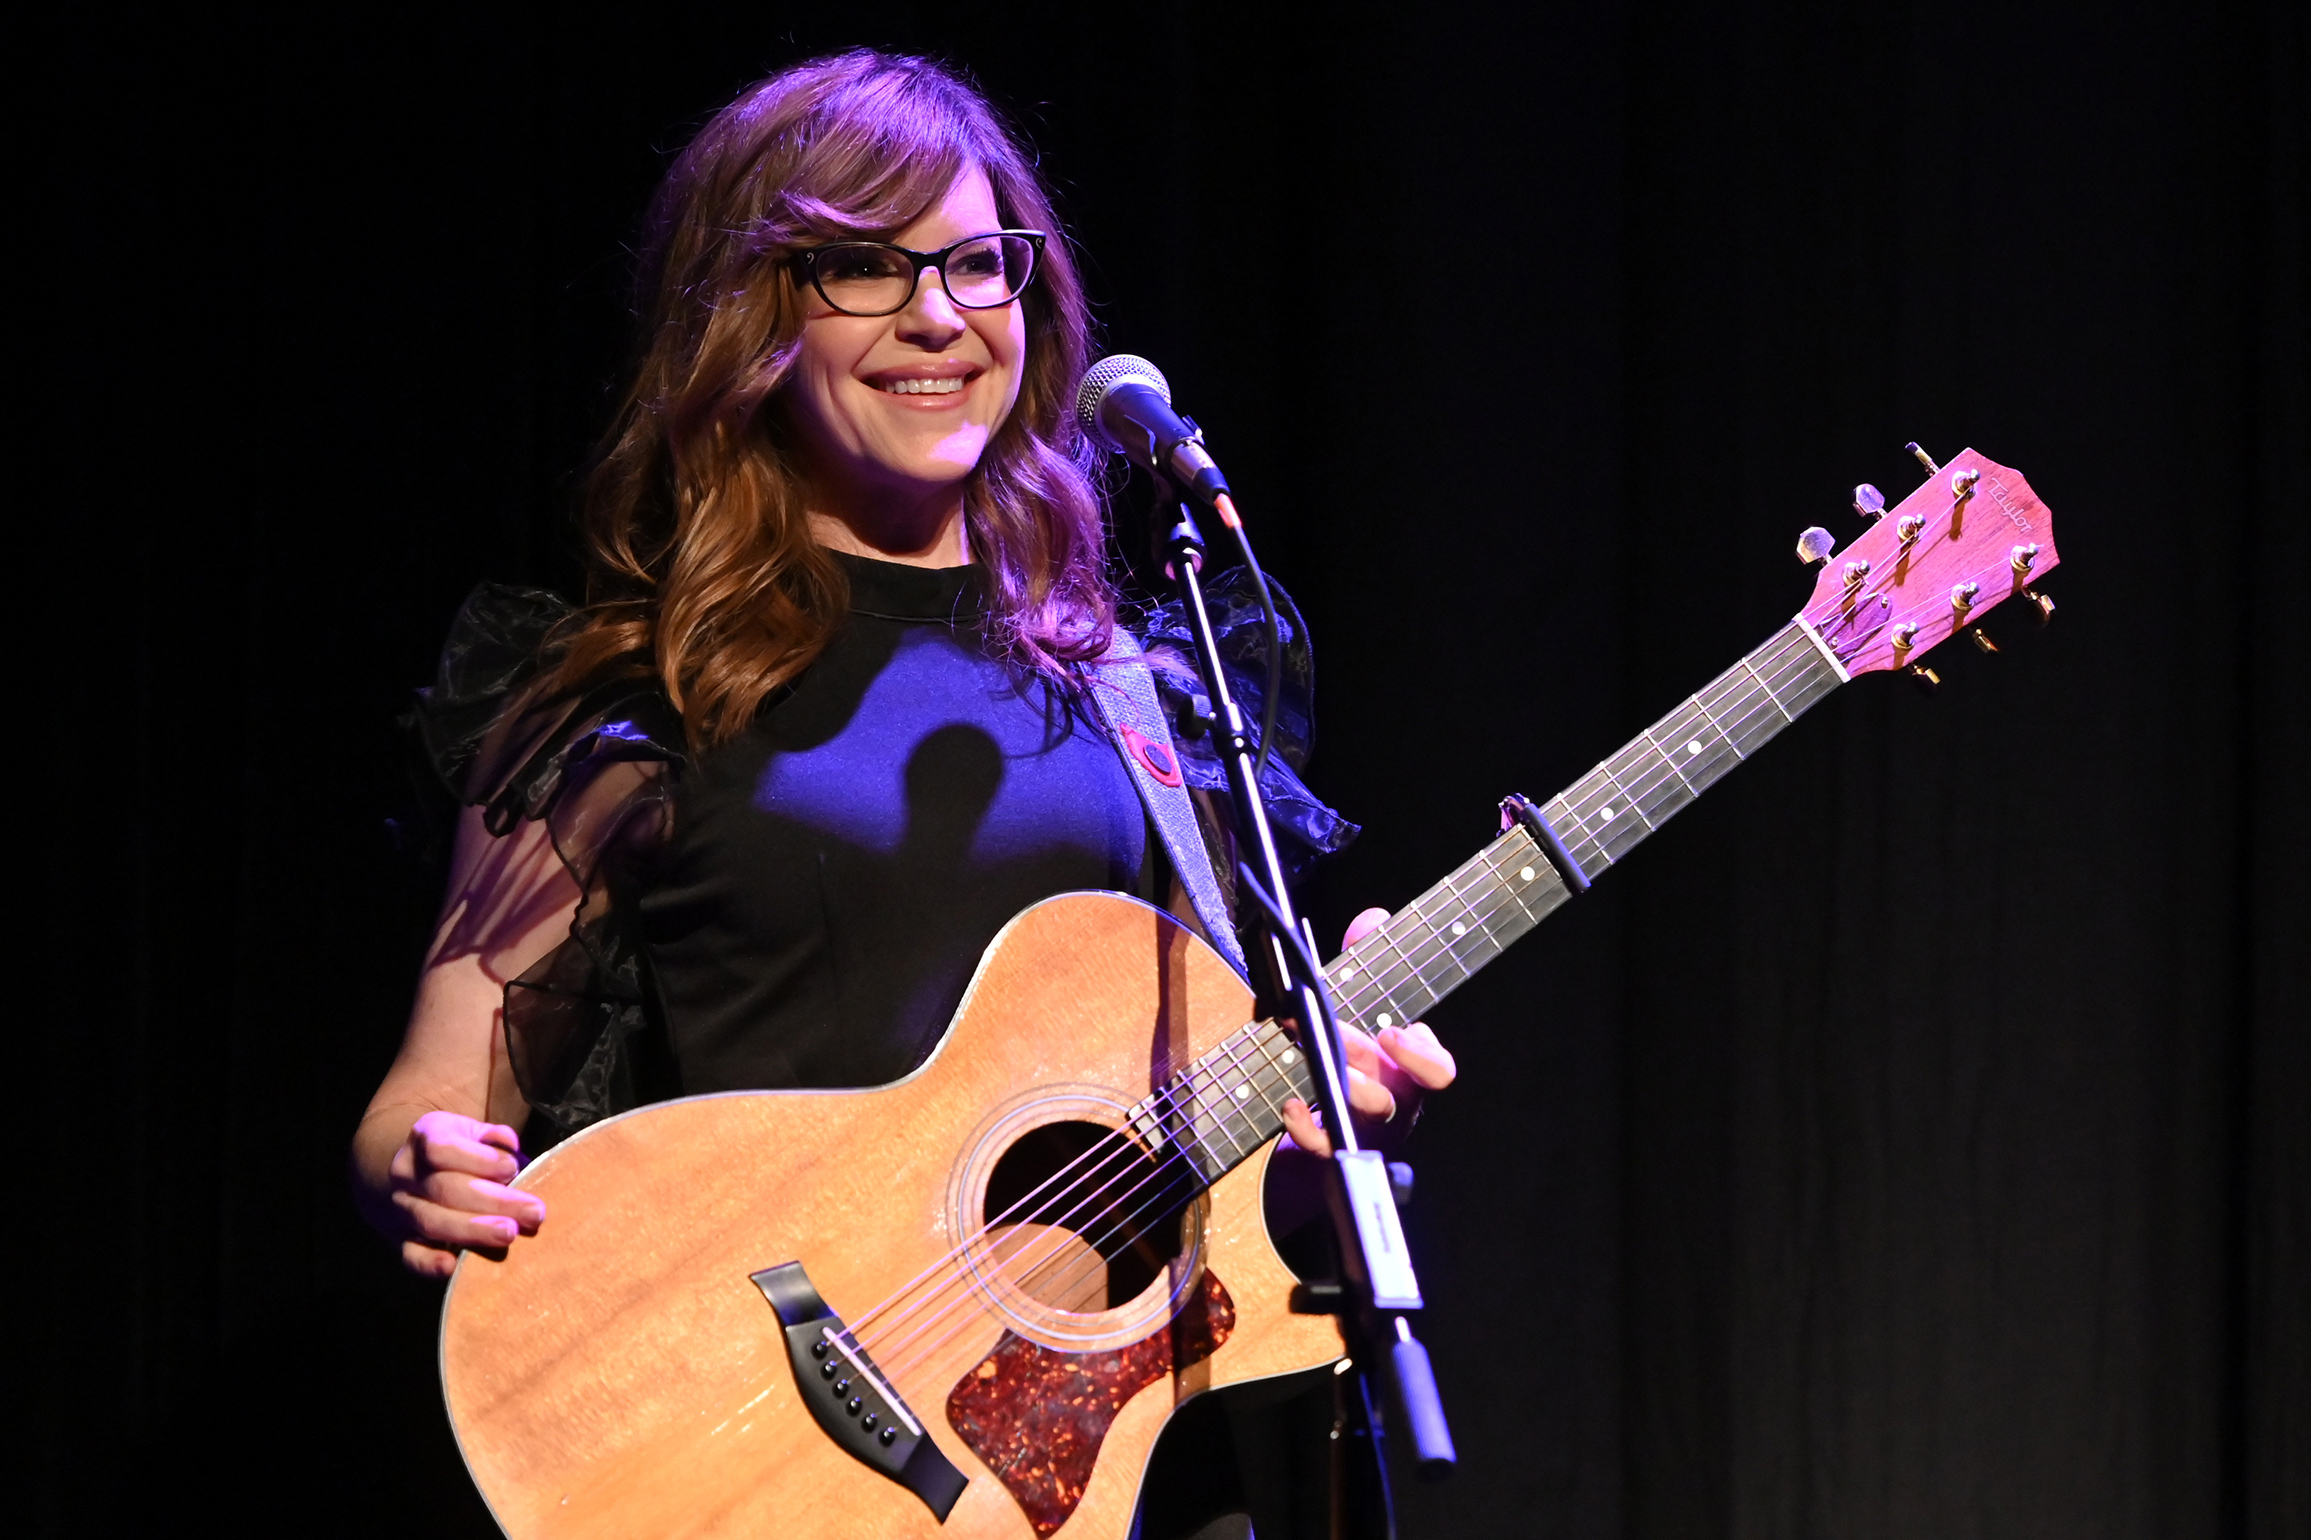 See Lisa Loeb Perform 'Stay' at Tribeca's 'Reality Bites' Reunion